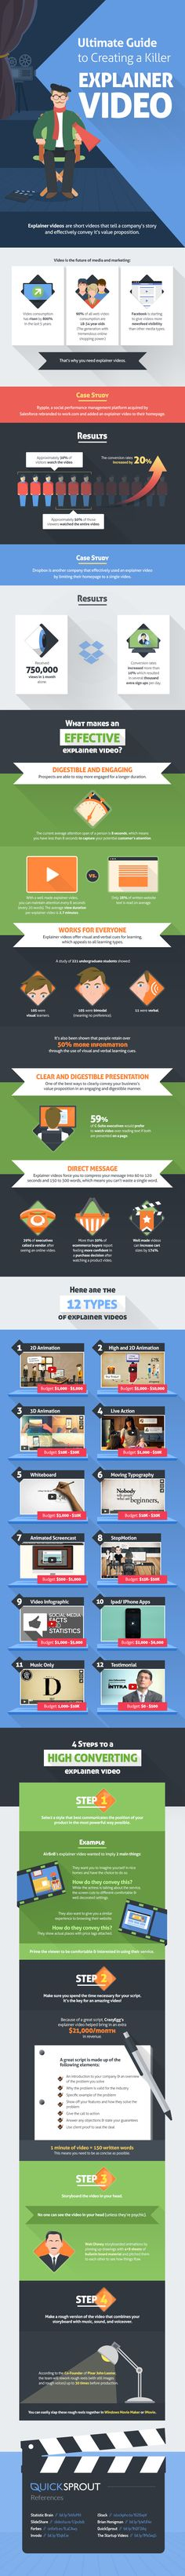 [INFOGRAPHIC] How to Start Using Explainer Videos: Effectiveness; 12 types; Conversions; Details.